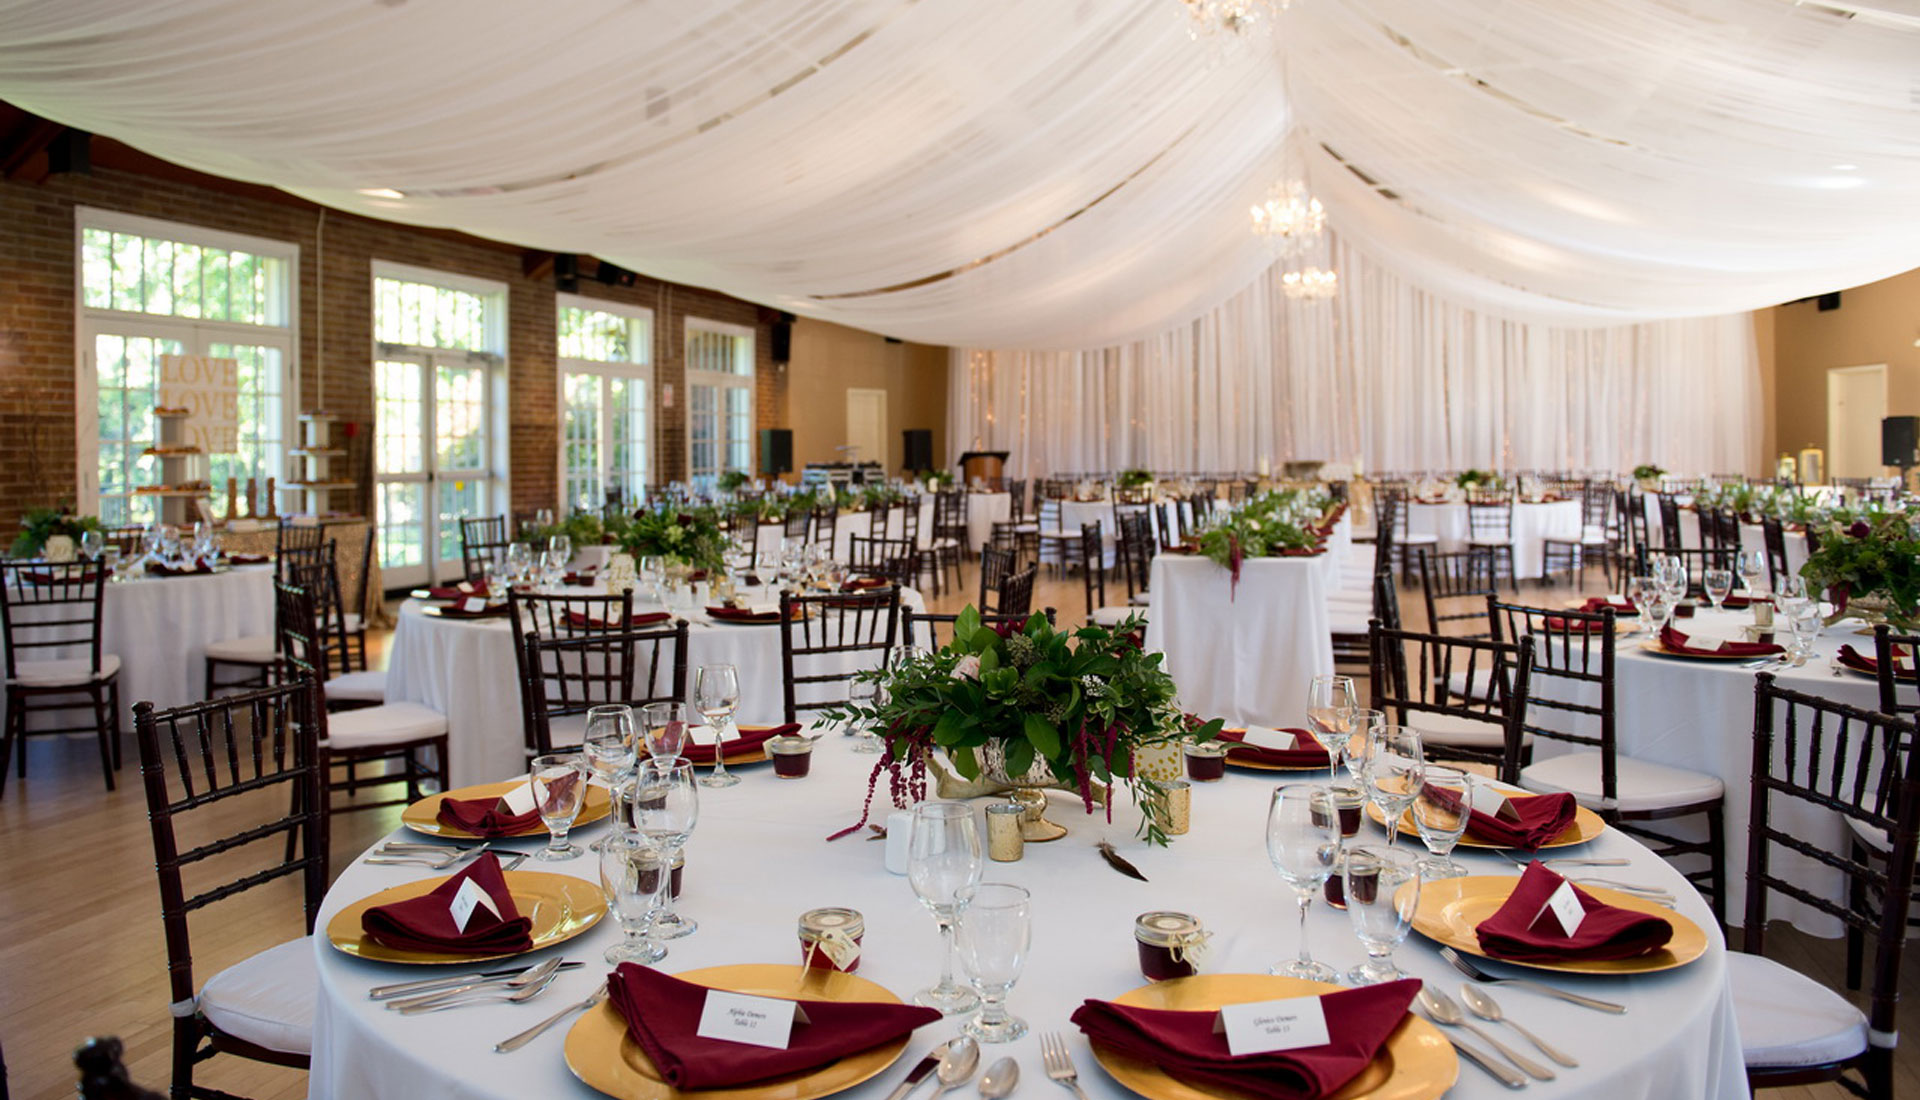 Wedding dream wedding decorations and rentals rent high quality decor for your wedding day junglespirit Choice Image